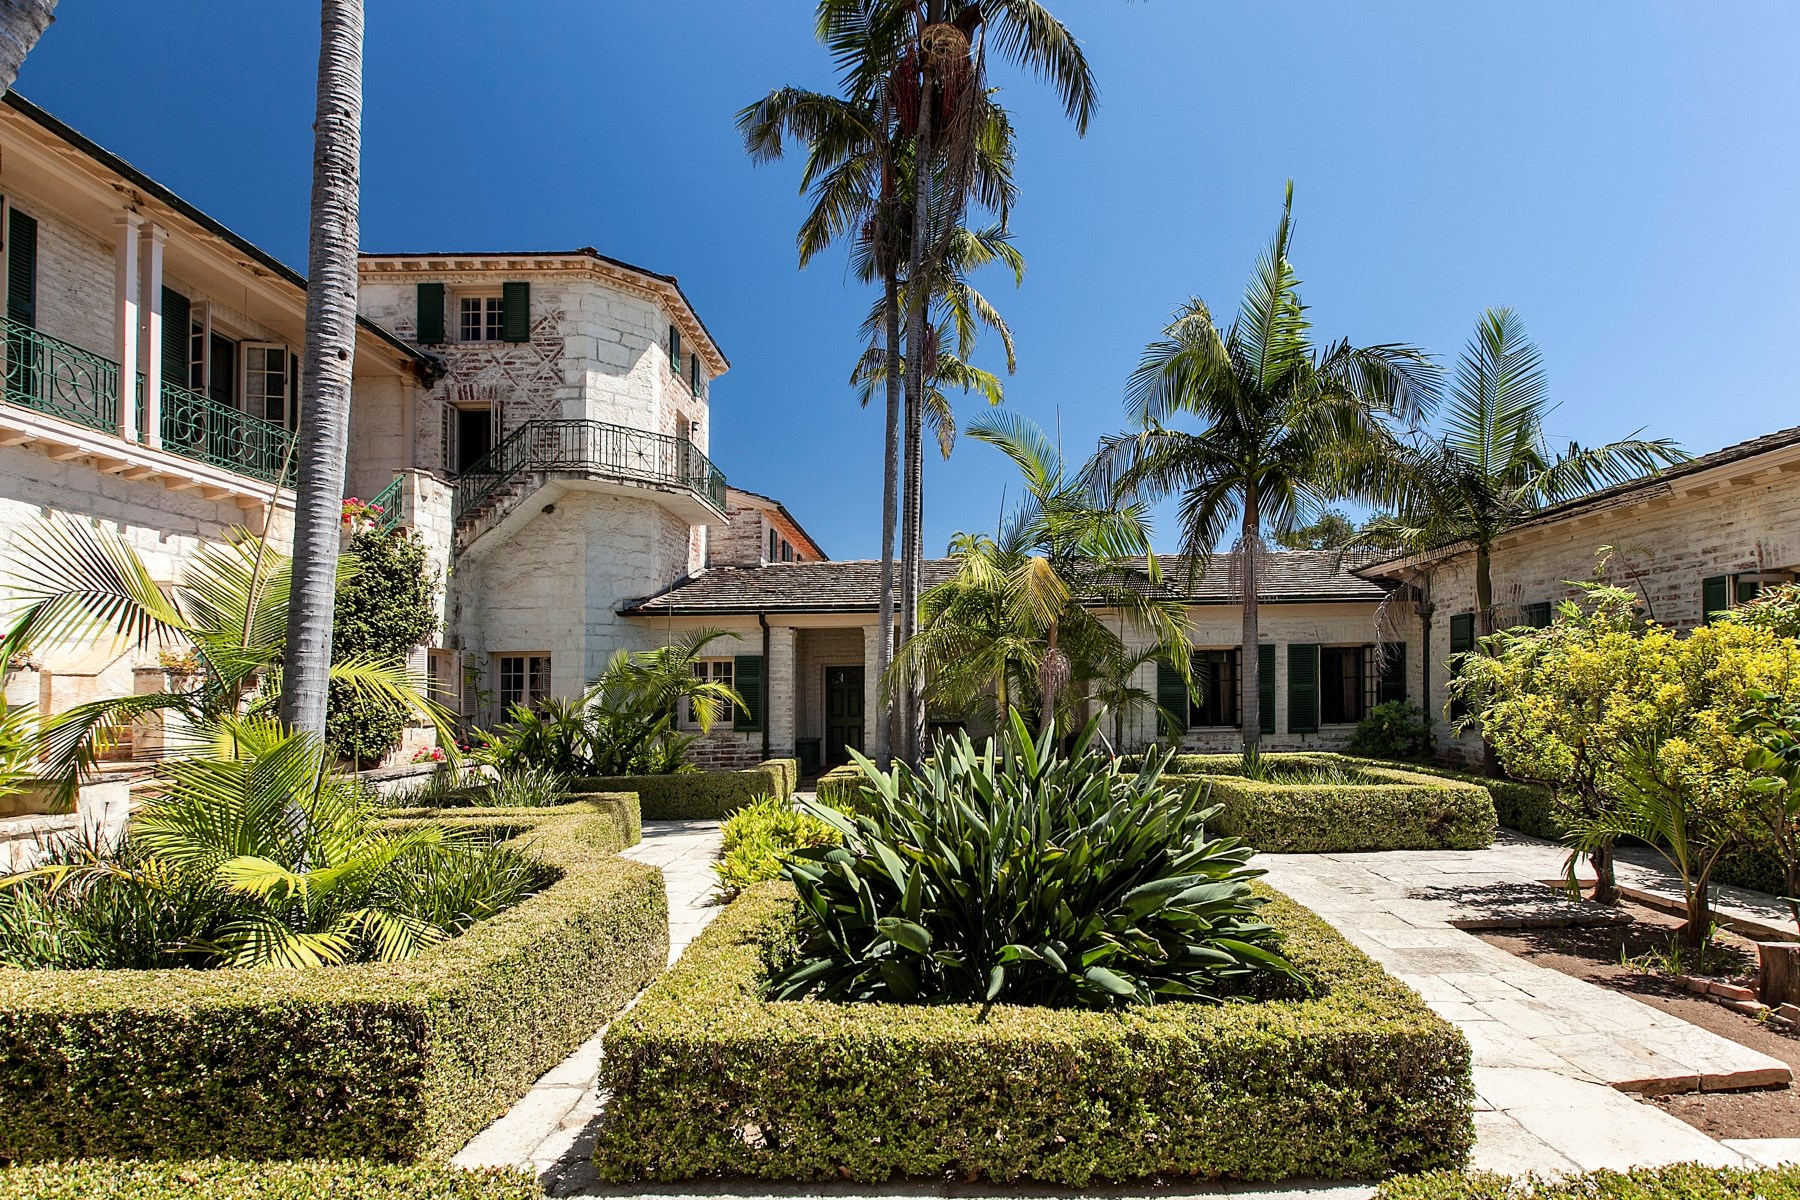 Casa Unifamiliar por un Venta en Rancho San Carlos 2500 East Valley Road, Montecito, California 93108 Estados Unidos